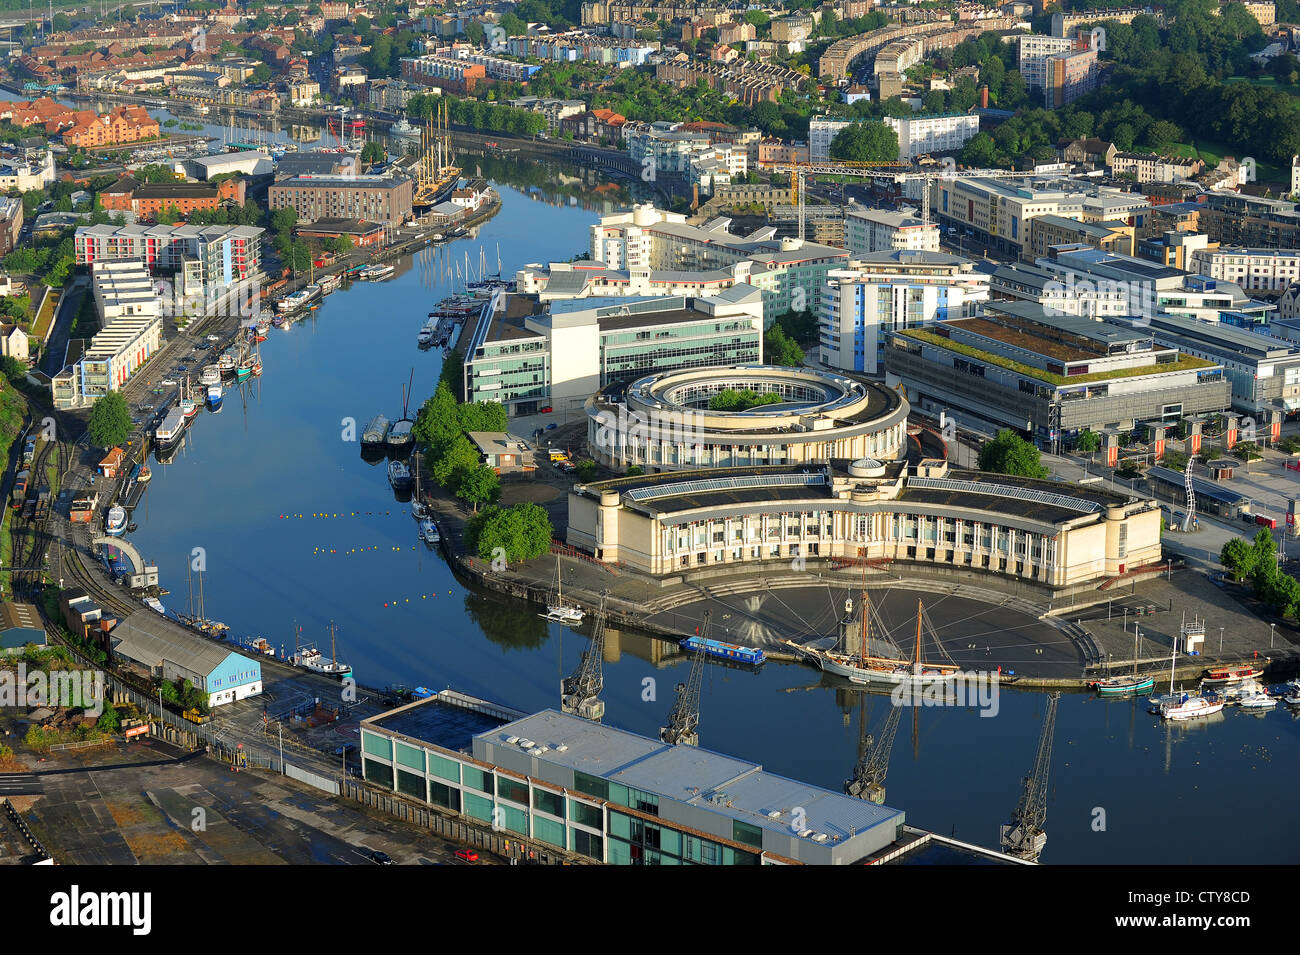 Image result for bristol waterfront